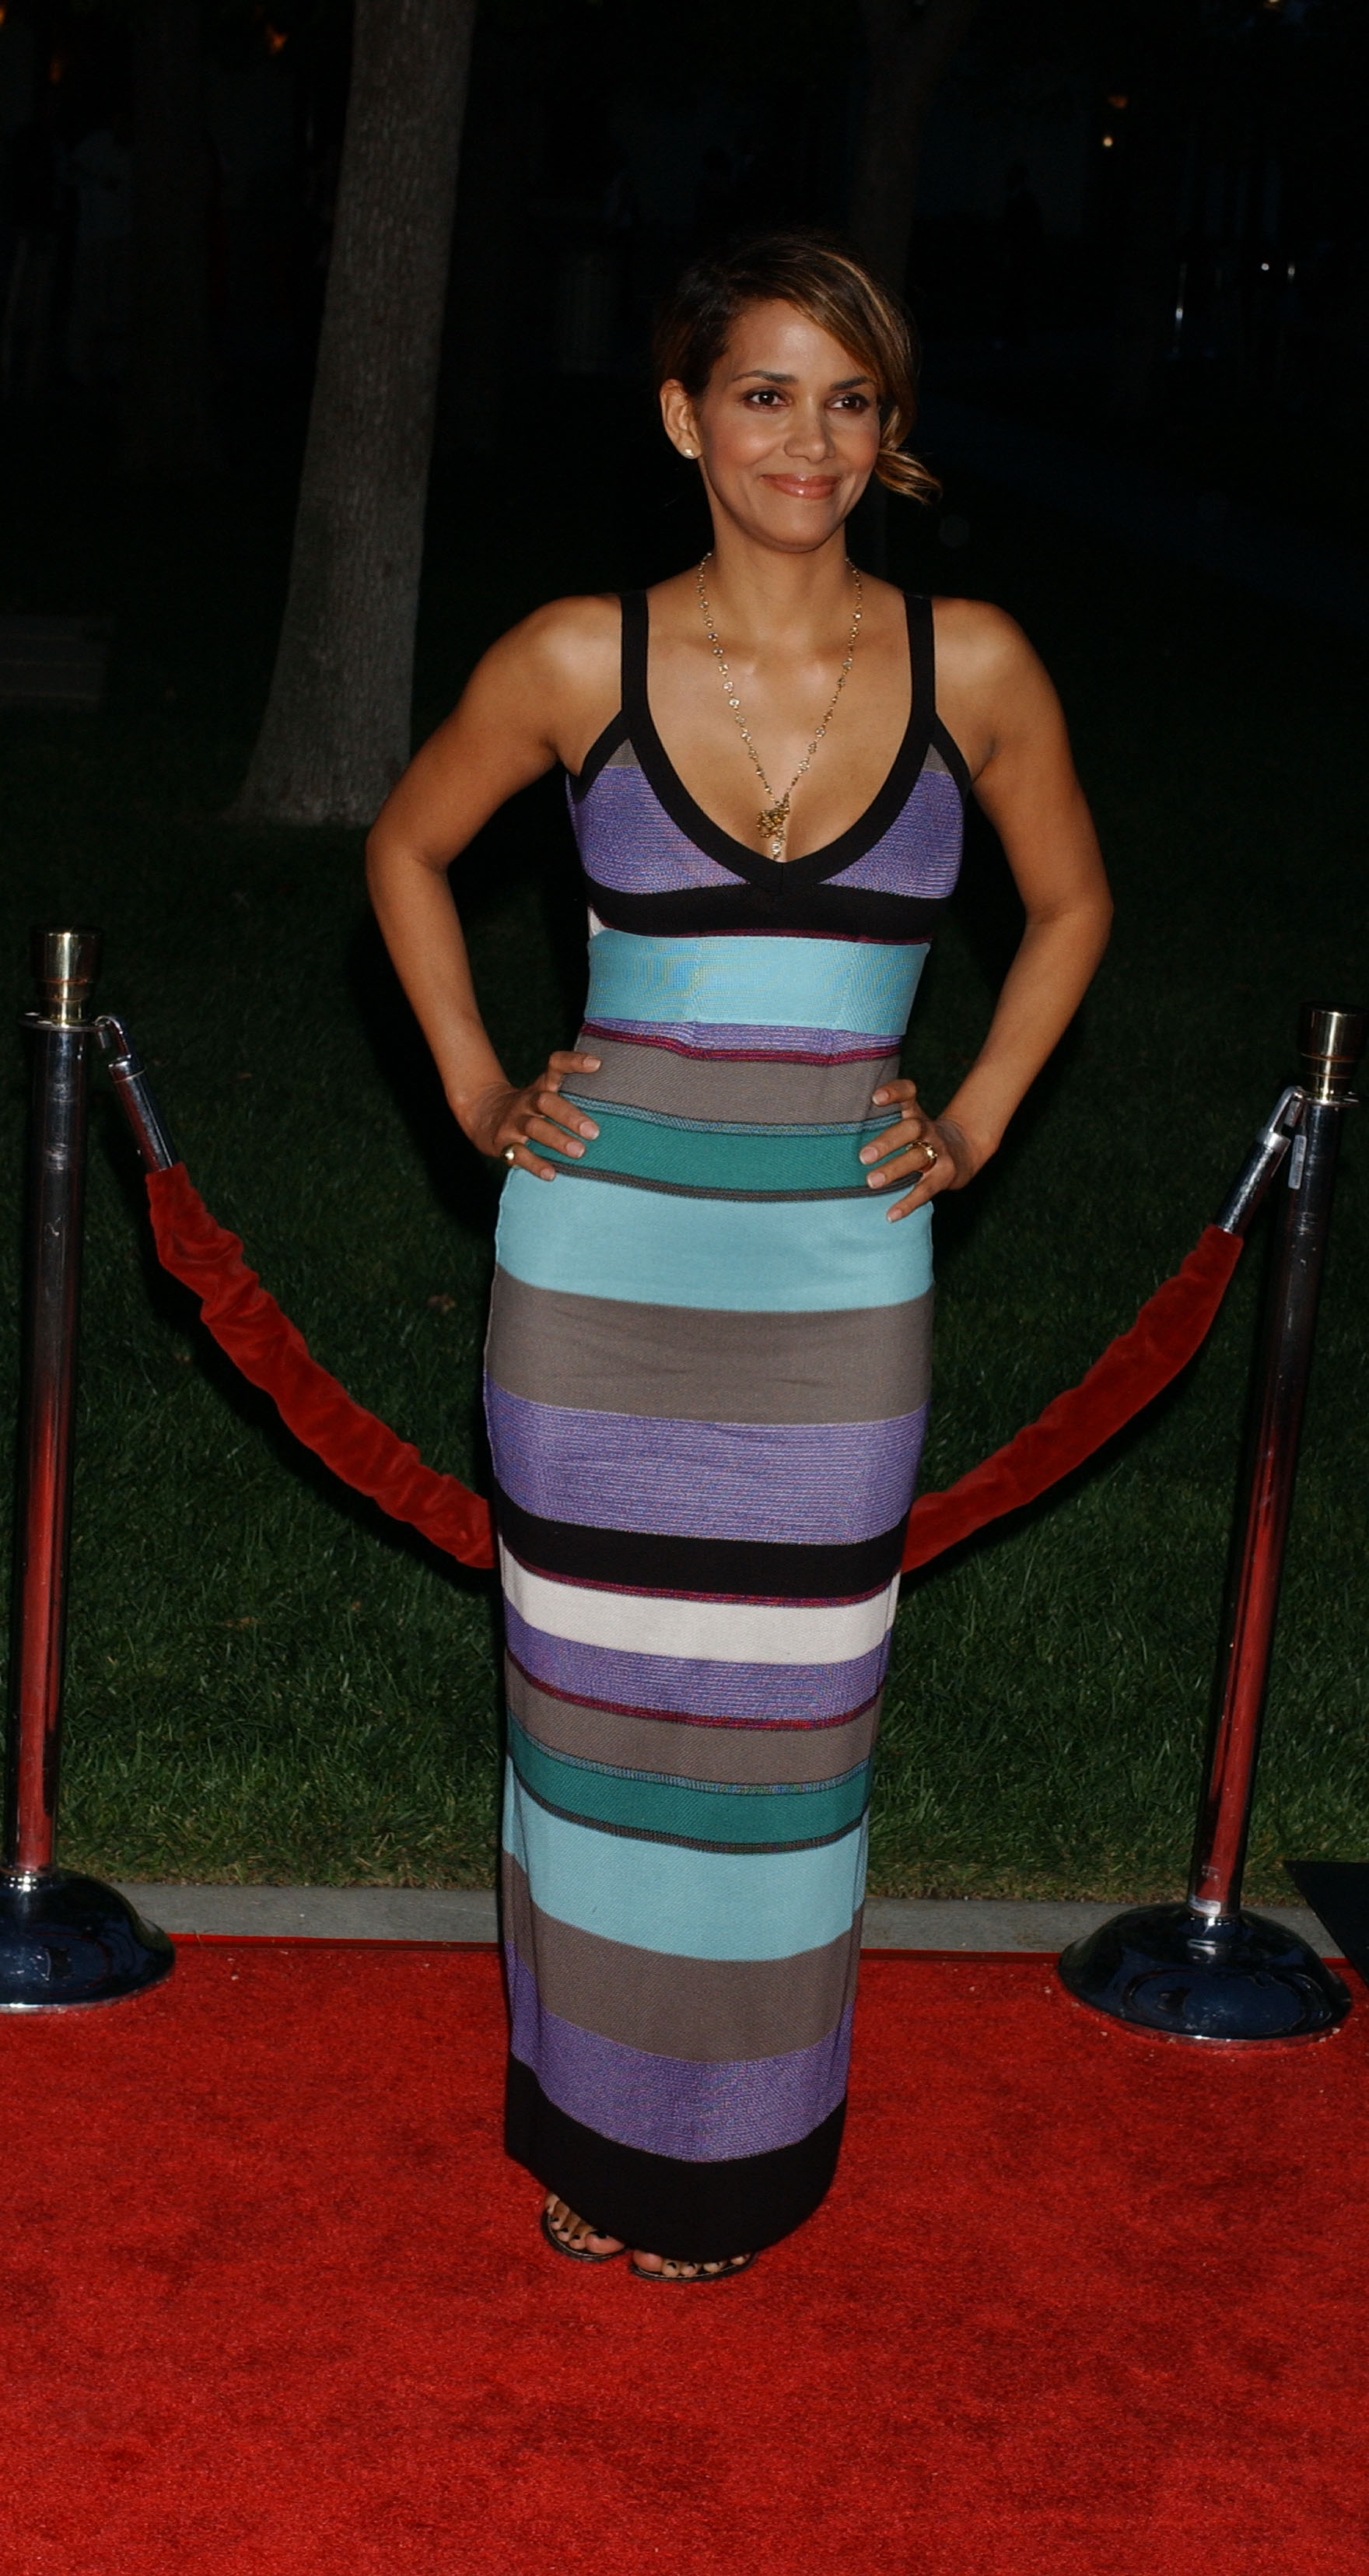 65569_Halle_Berry_The_Soloist_premiere_in_Los_Angeles_57_122_463lo.jpg